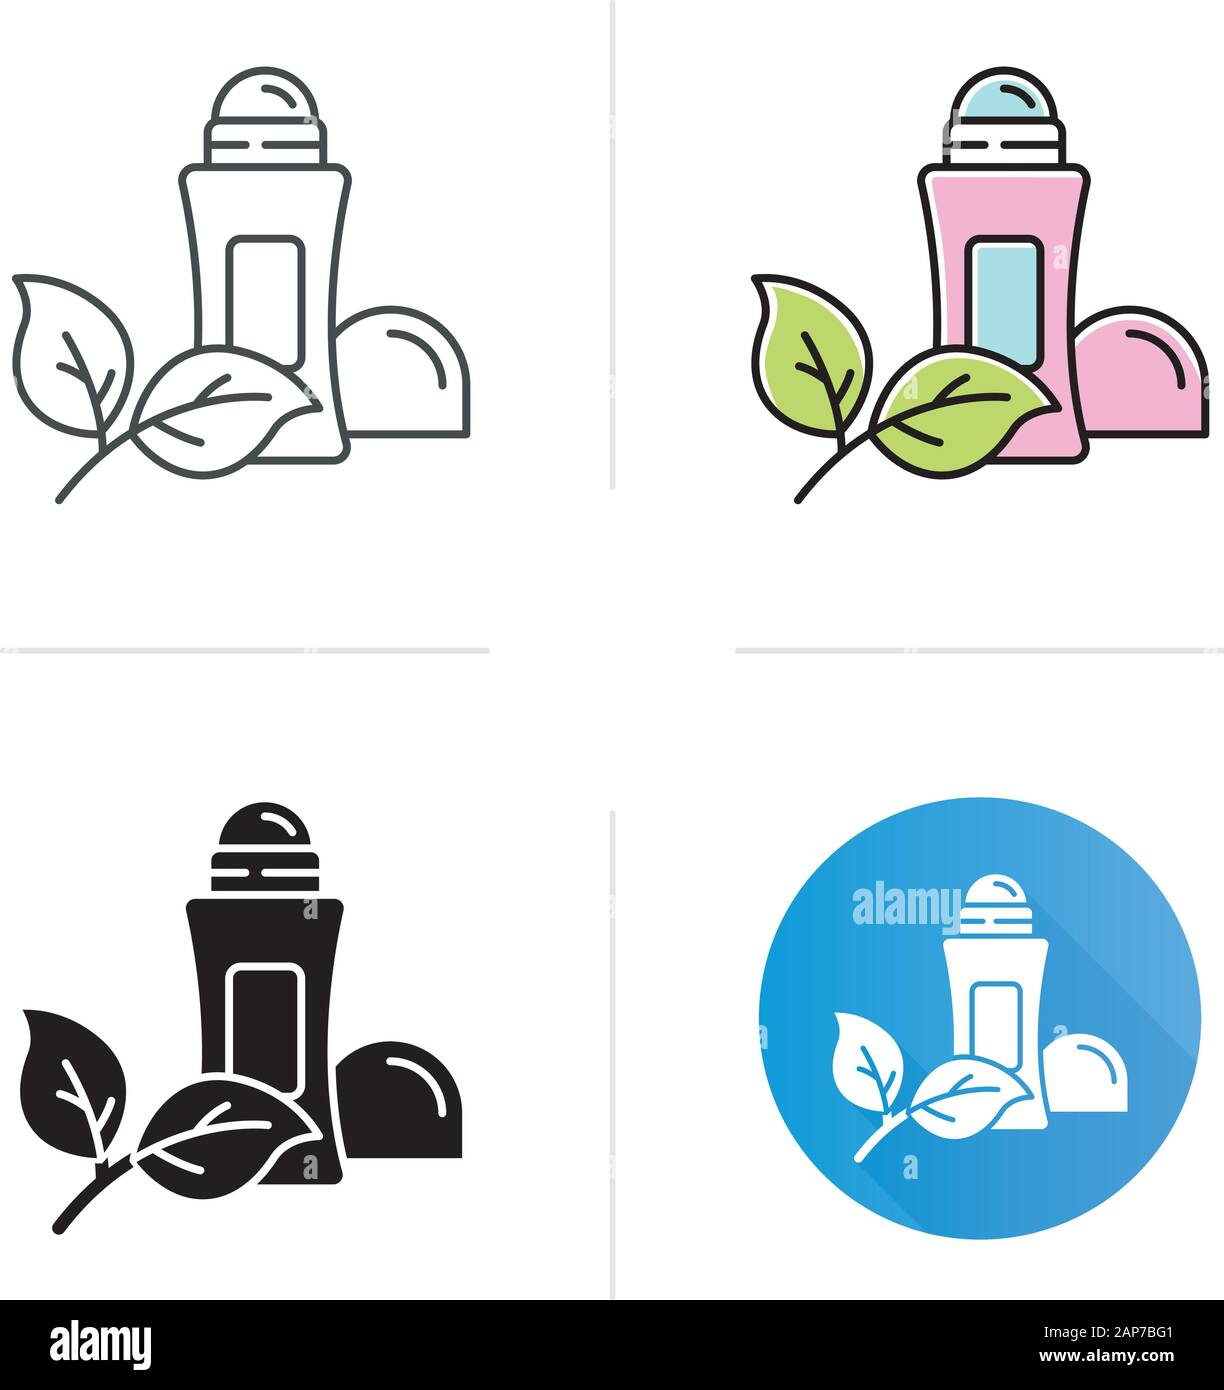 Free Cliparts Hygiene Products, Download Free Clip Art, Free Clip Art on  Clipart Library